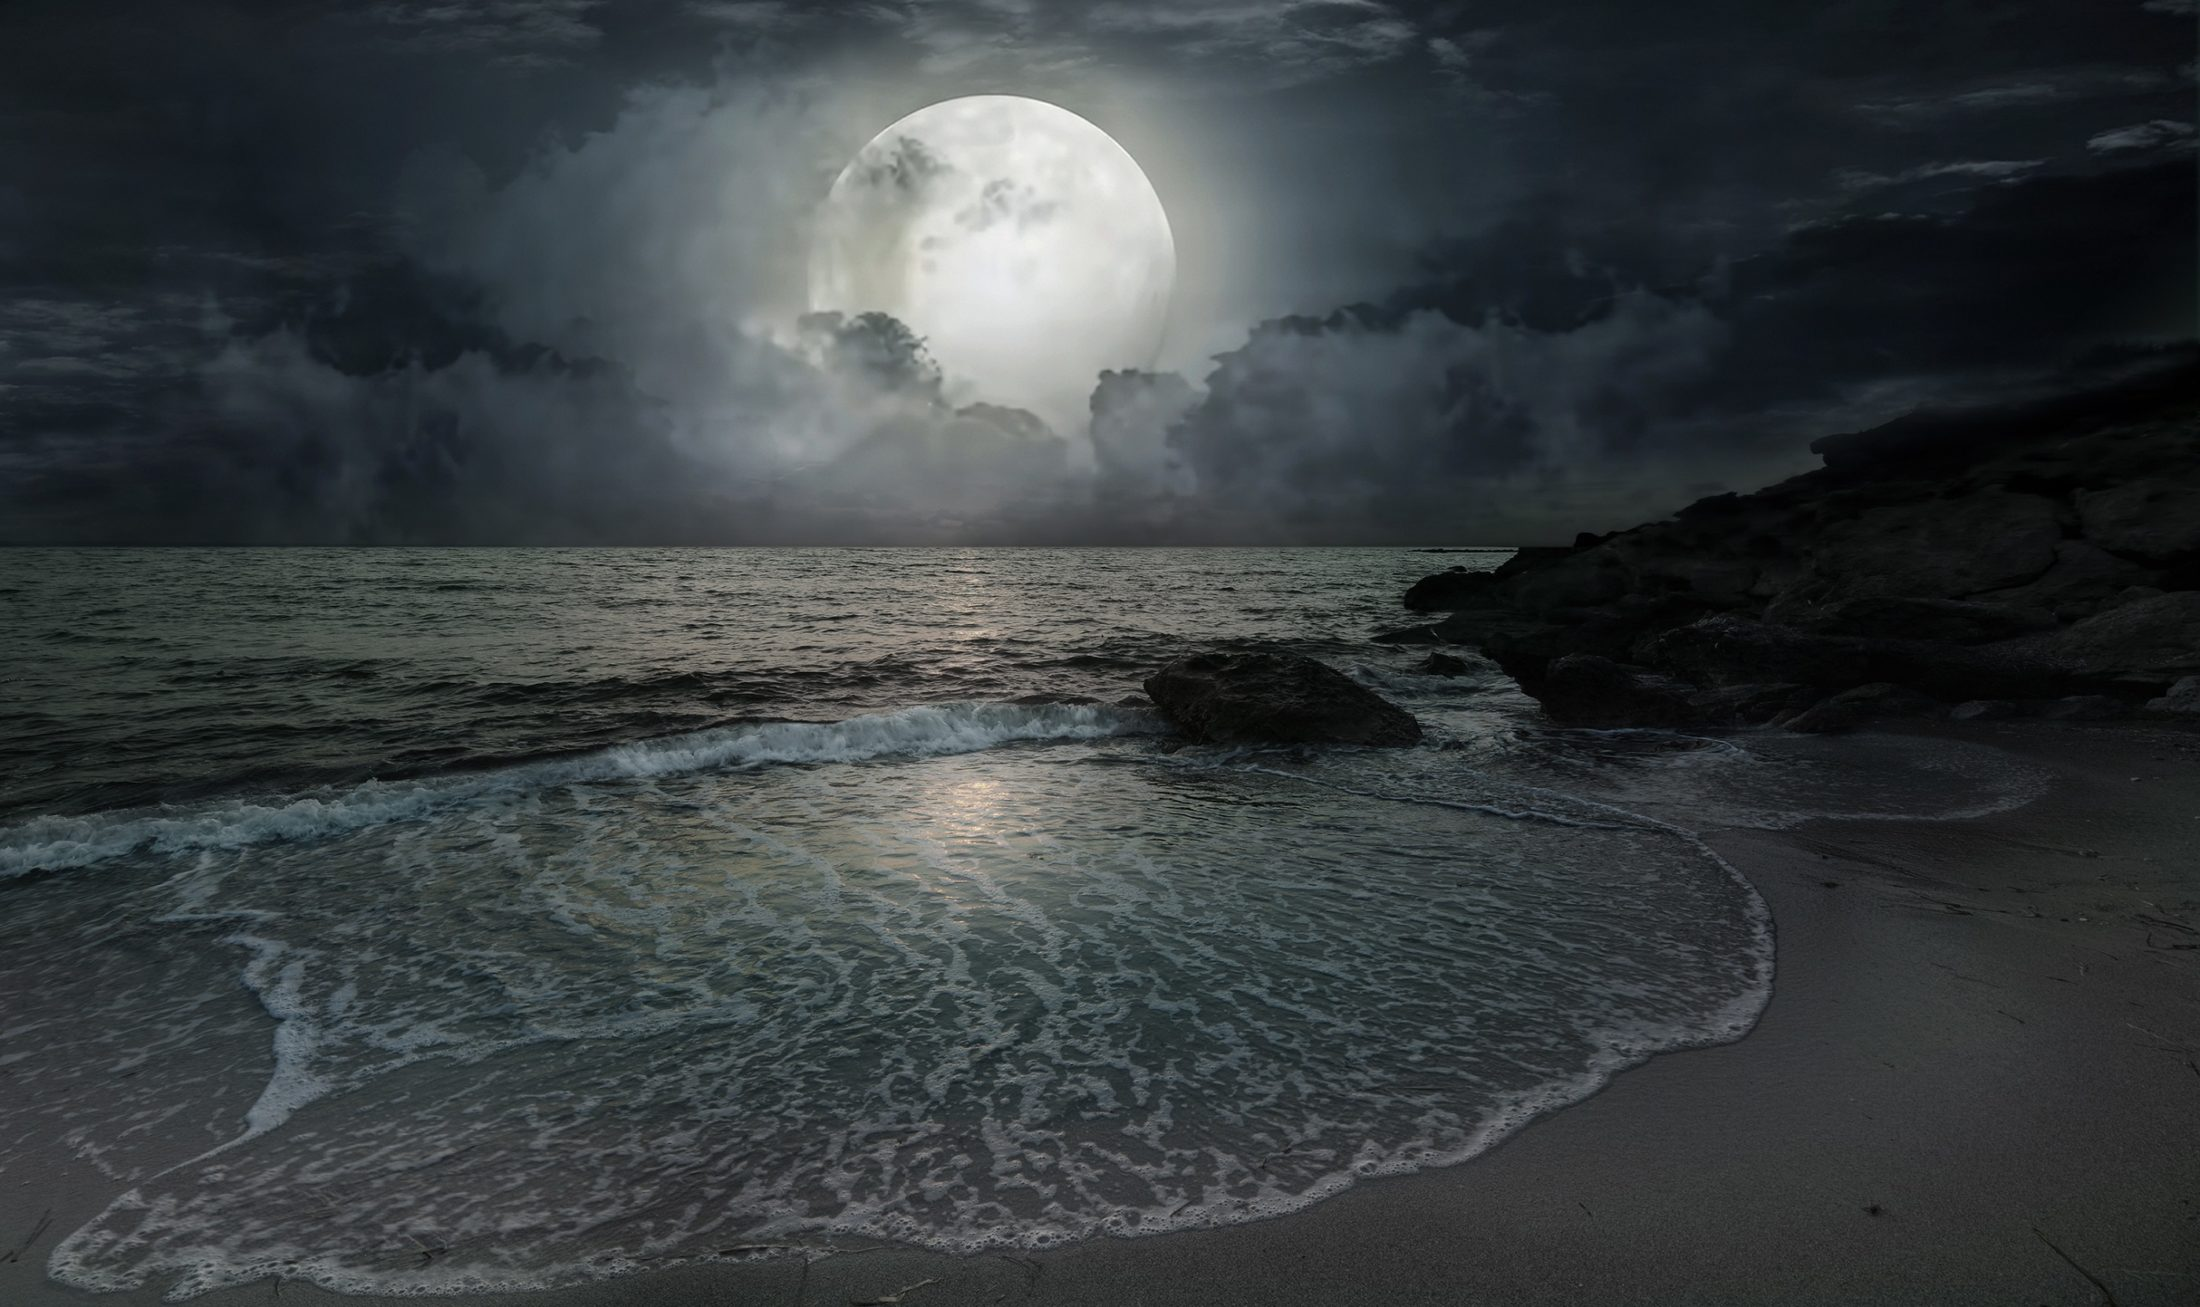 Water, the Moon, and the Gravity of the Situation